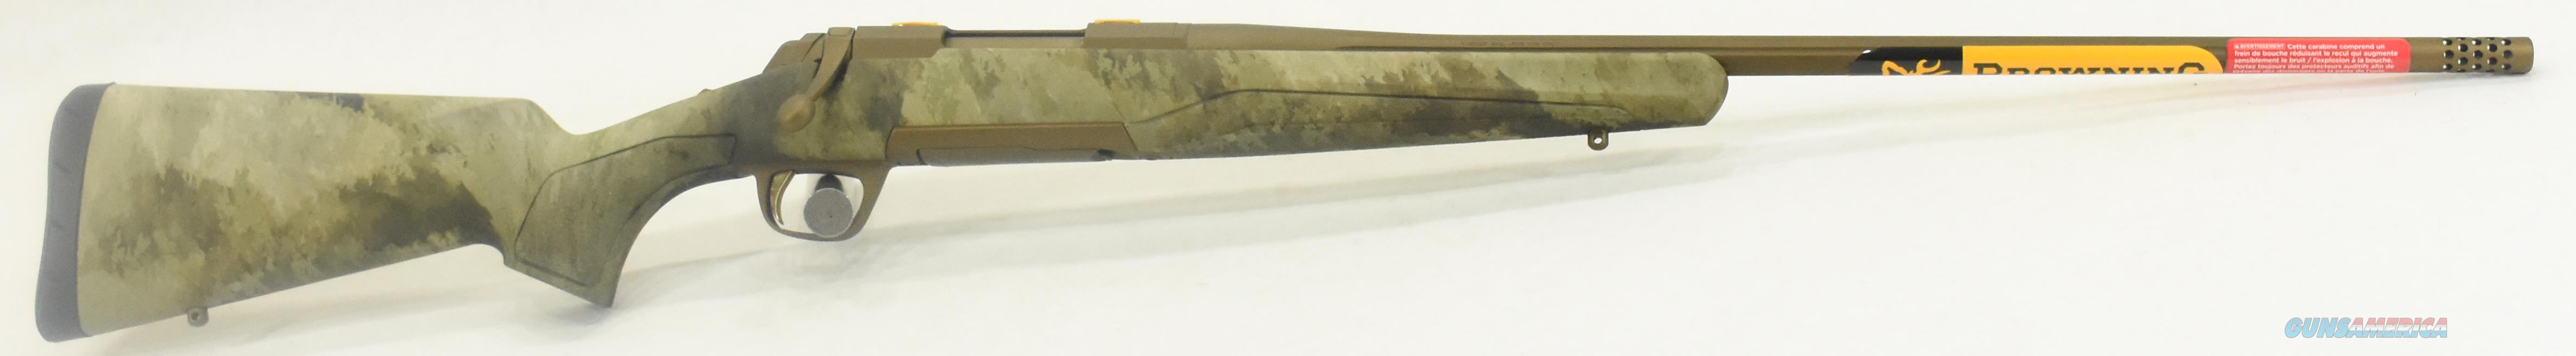 035498218 Browning Xbolt Hells Canyon Speed 308 Win 22In  Guns > Rifles > Browning Rifles > Bolt Action > Hunting > Blue